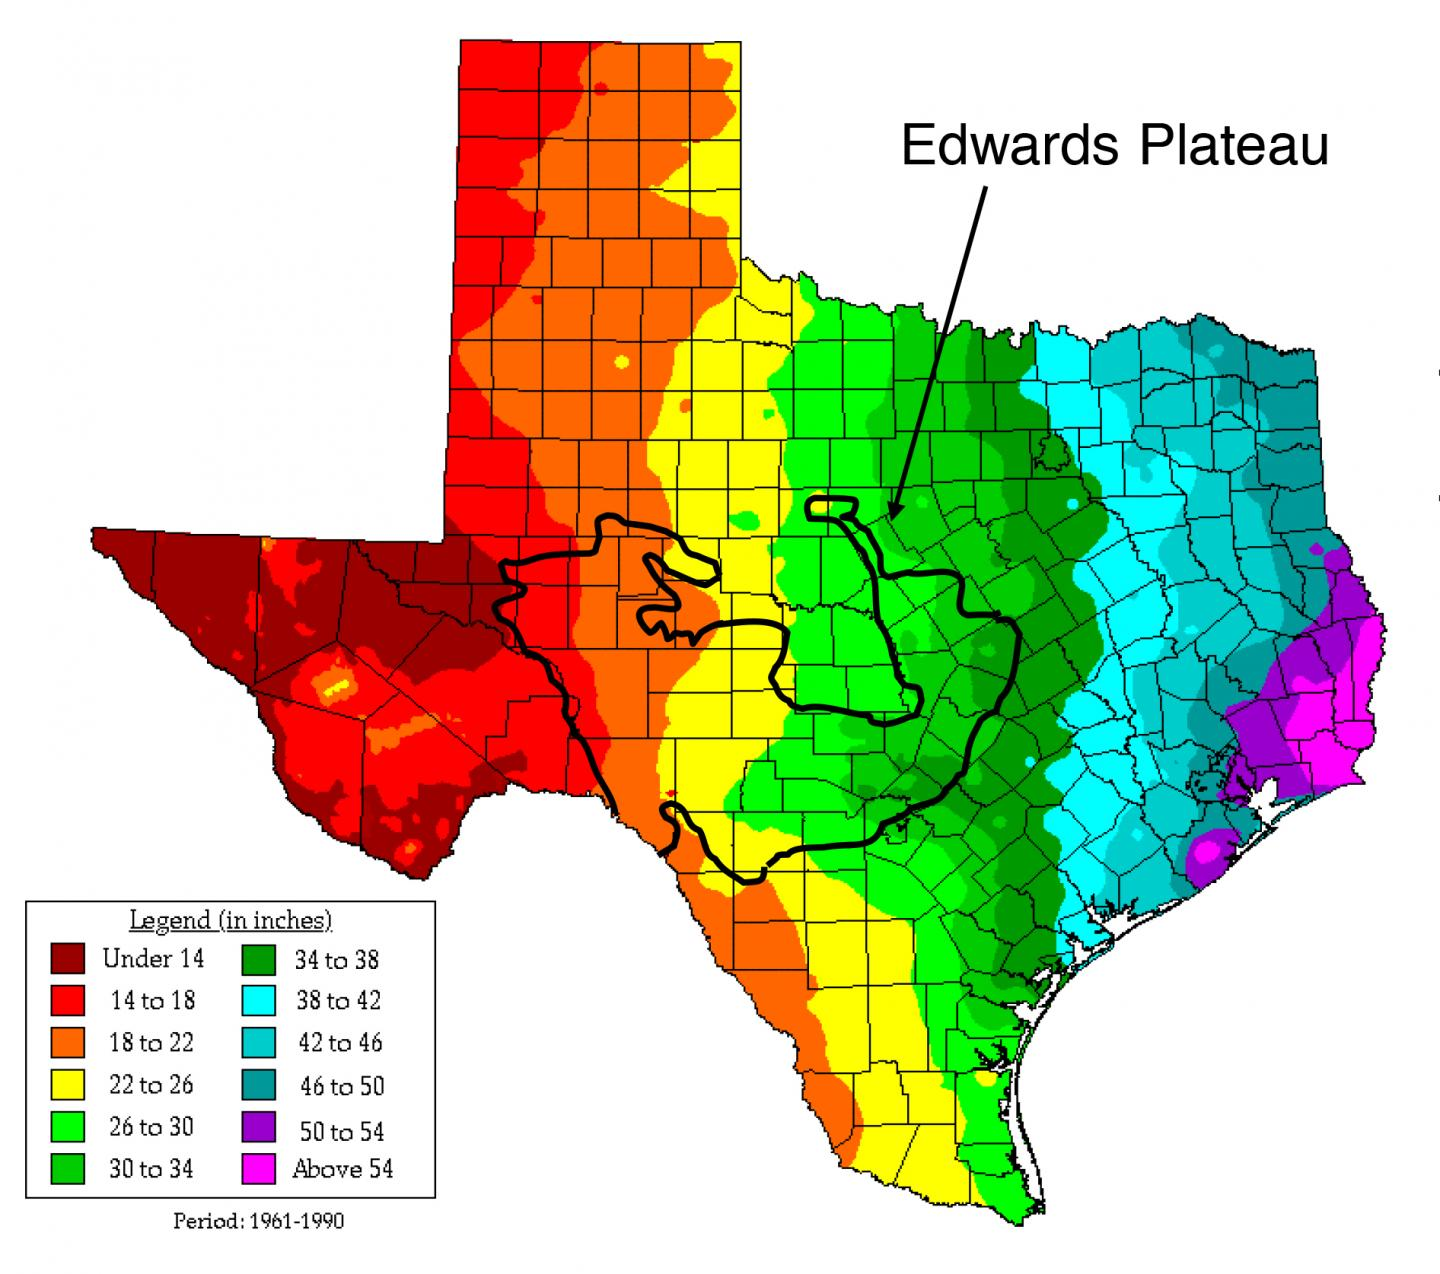 Map of Soil Sampling Locations along the Edwards Plateau